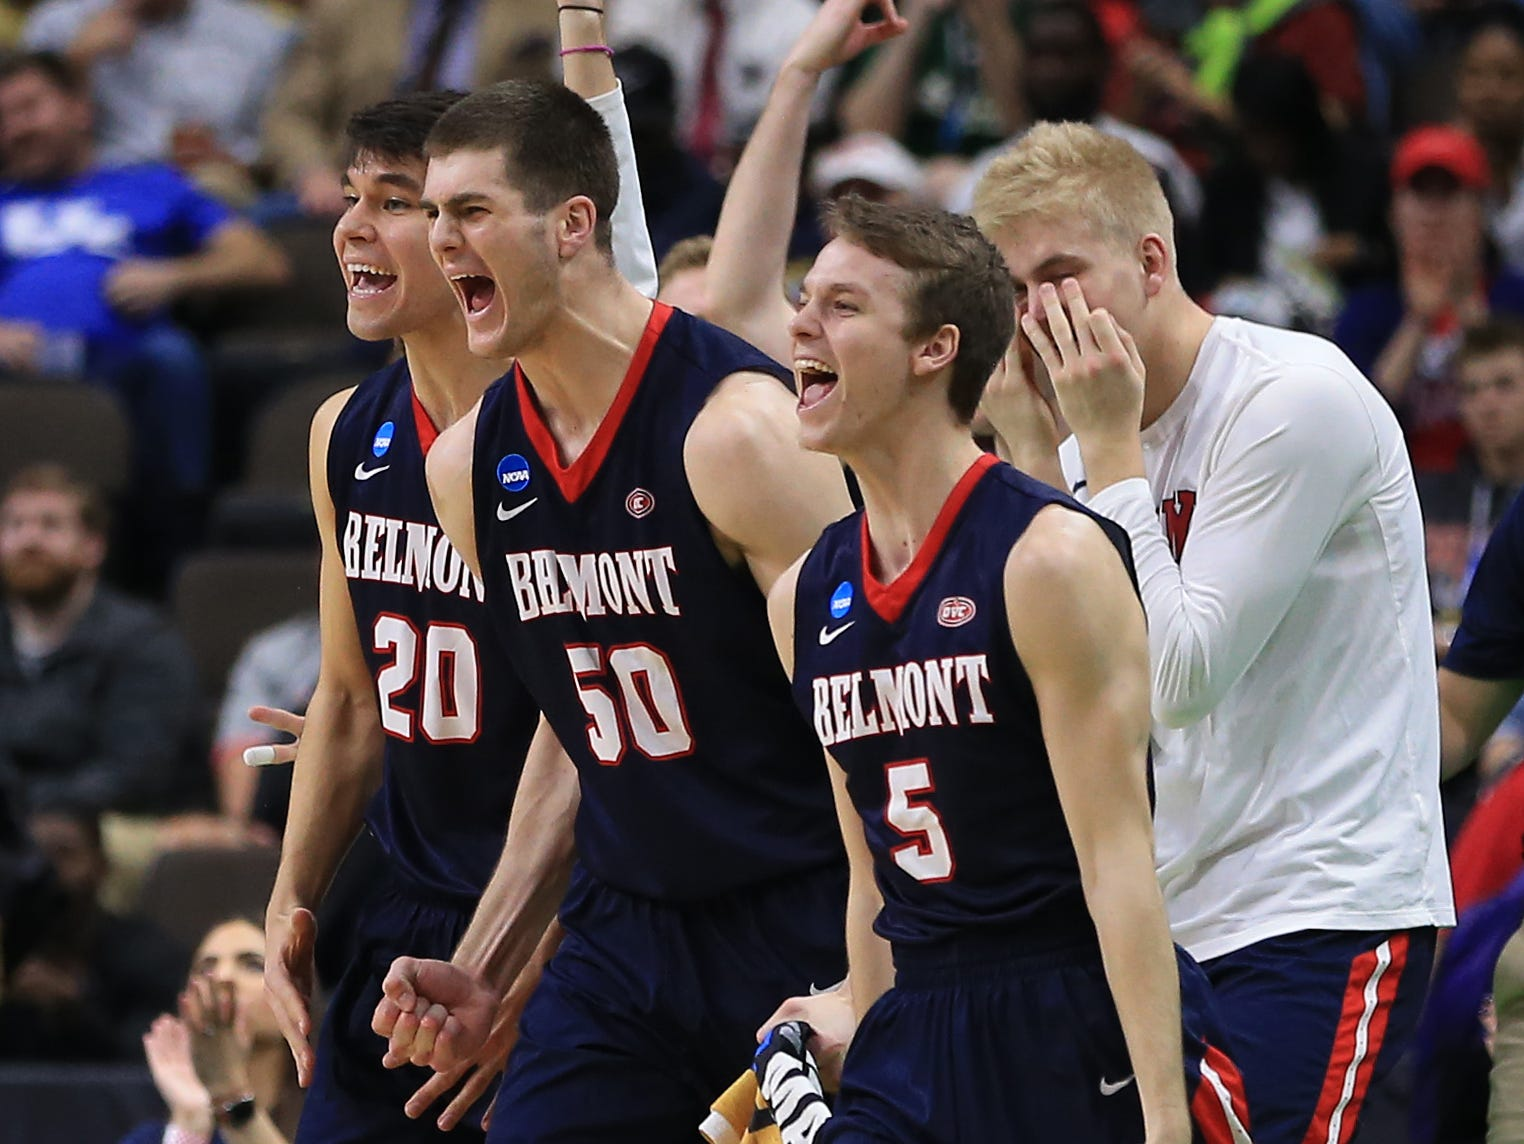 Mar 21, 2019; Jacksonville, FL, USA; The Belmont Bruins bench reacts during the first half against the Maryland Terrapins in the first round of the 2019 NCAA Tournament at Jacksonville Veterans Memorial Arena. Mandatory Credit: Matt Stamey-USA TODAY Sports